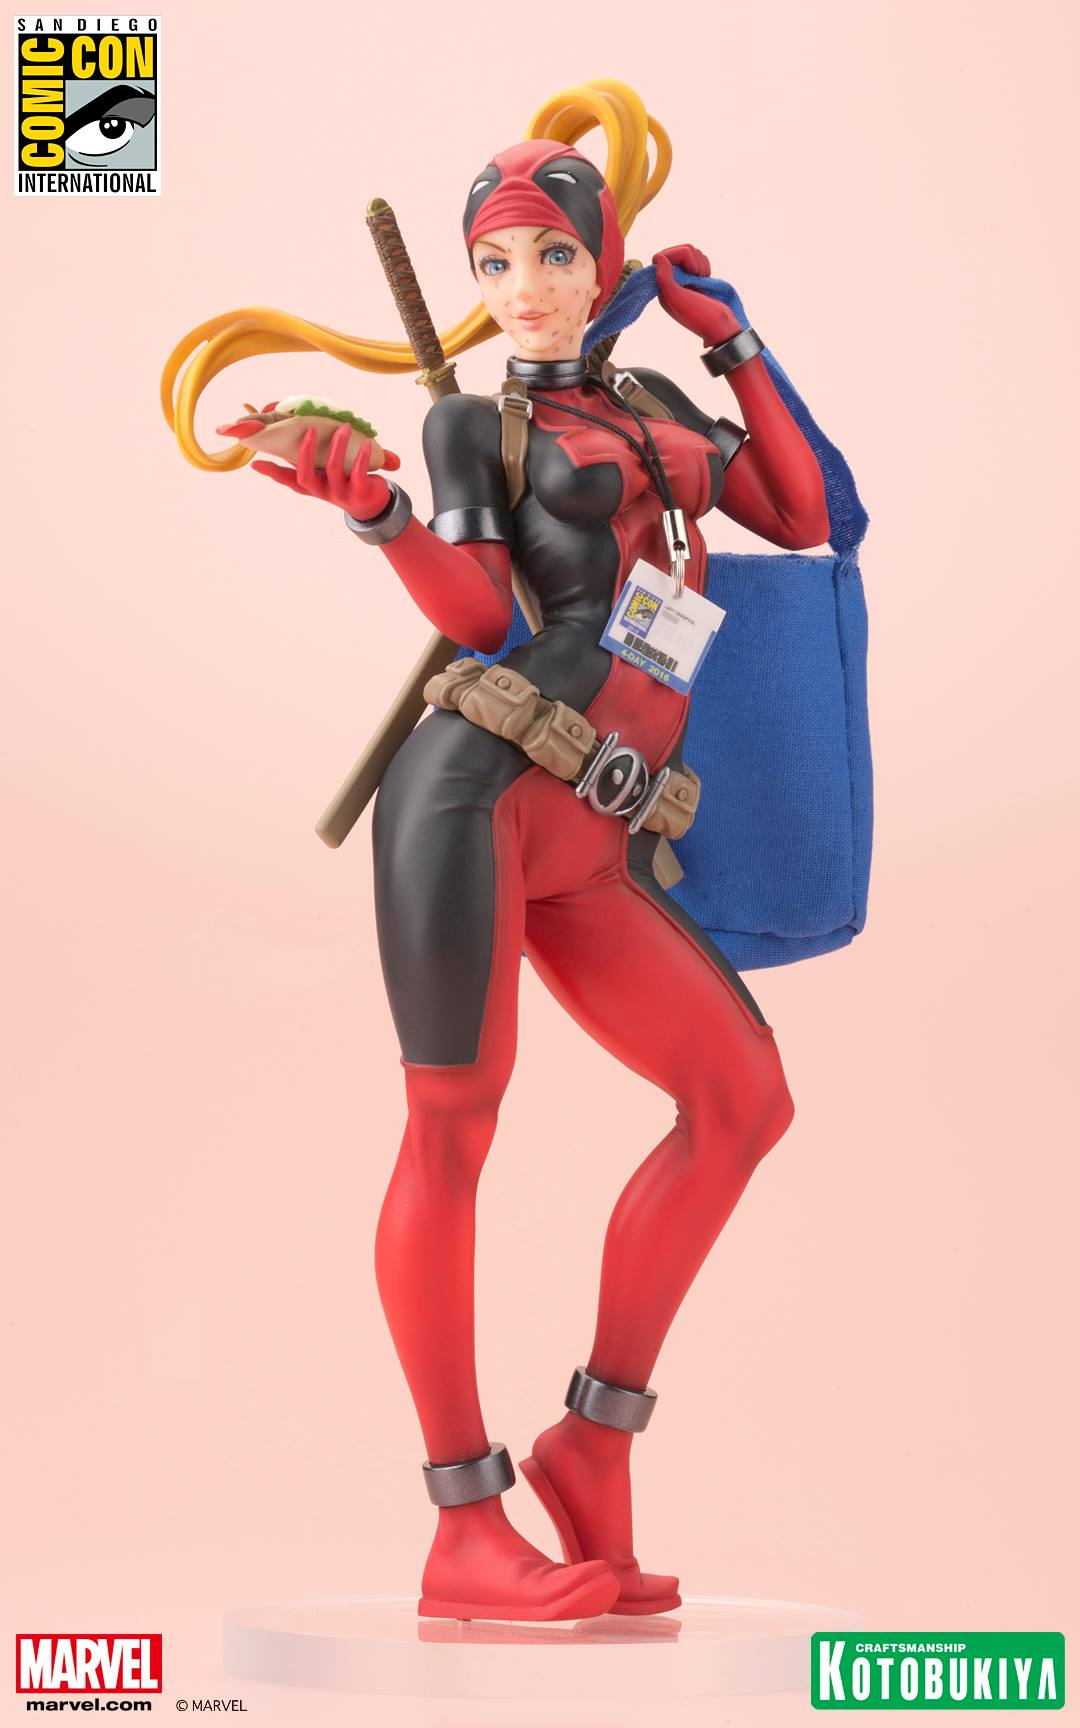 lady-deadpool-2016-sdcc-exclusive-bishoujo-statue-kotobukiya-marvel-1